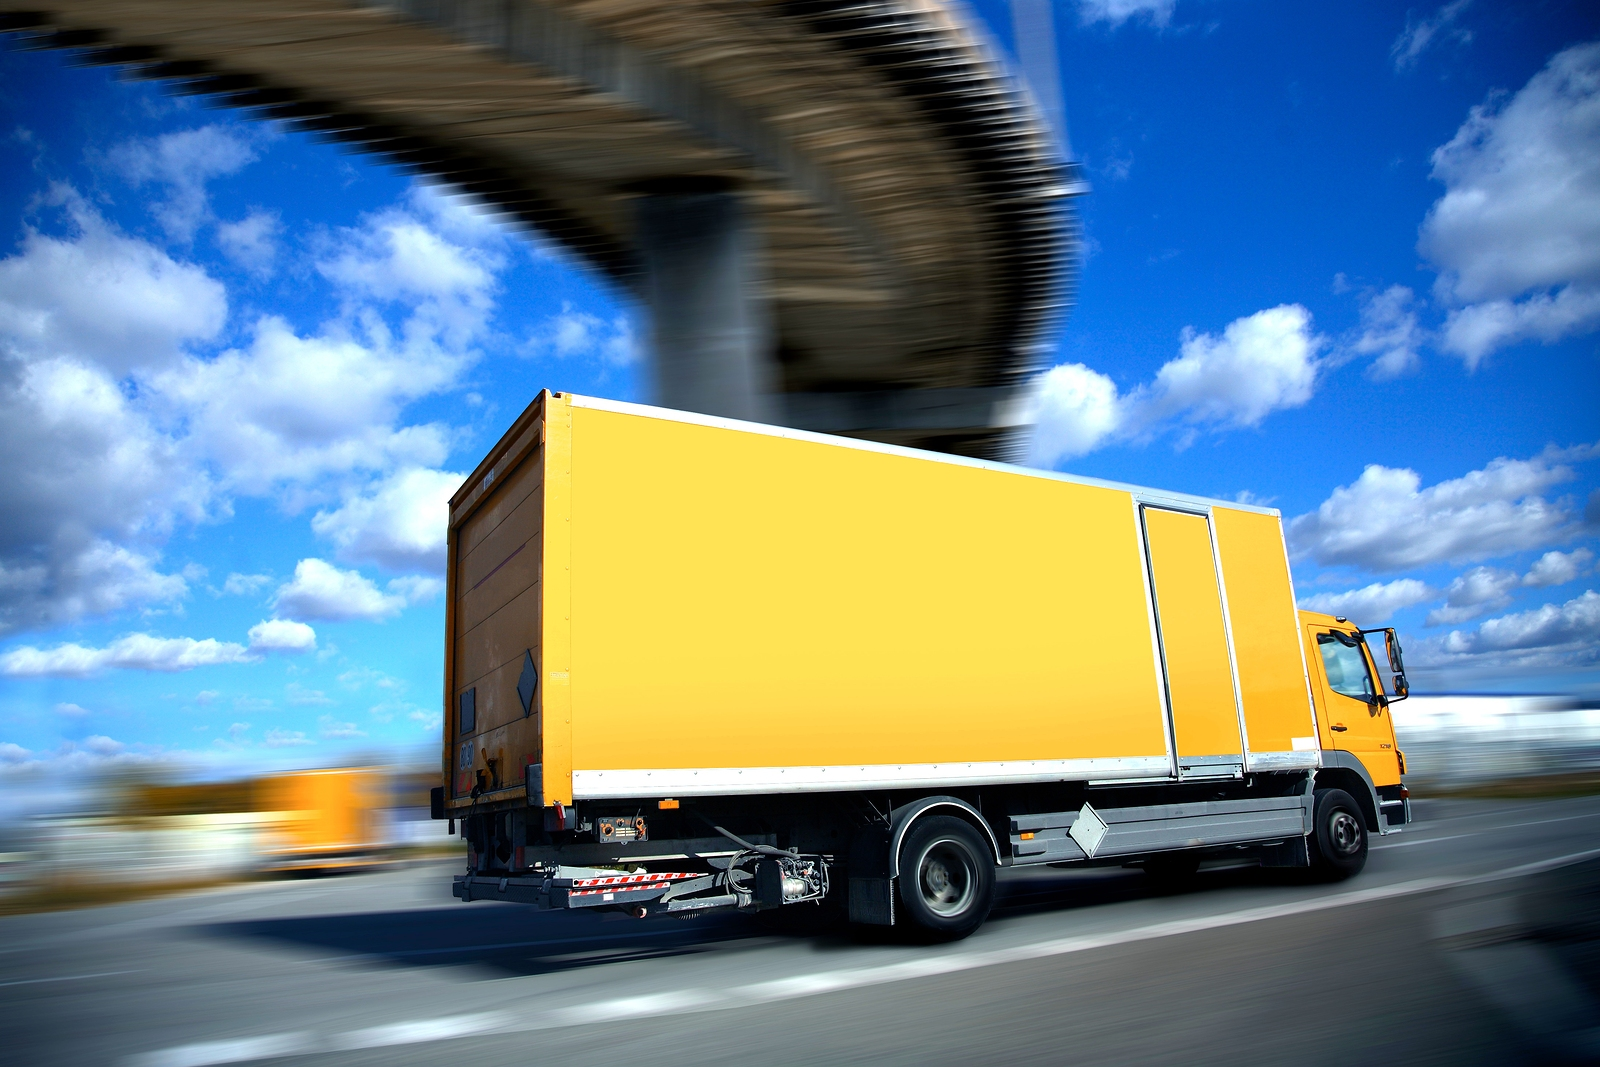 Voluntary Qualified Importer Program - Truck Shipping Items